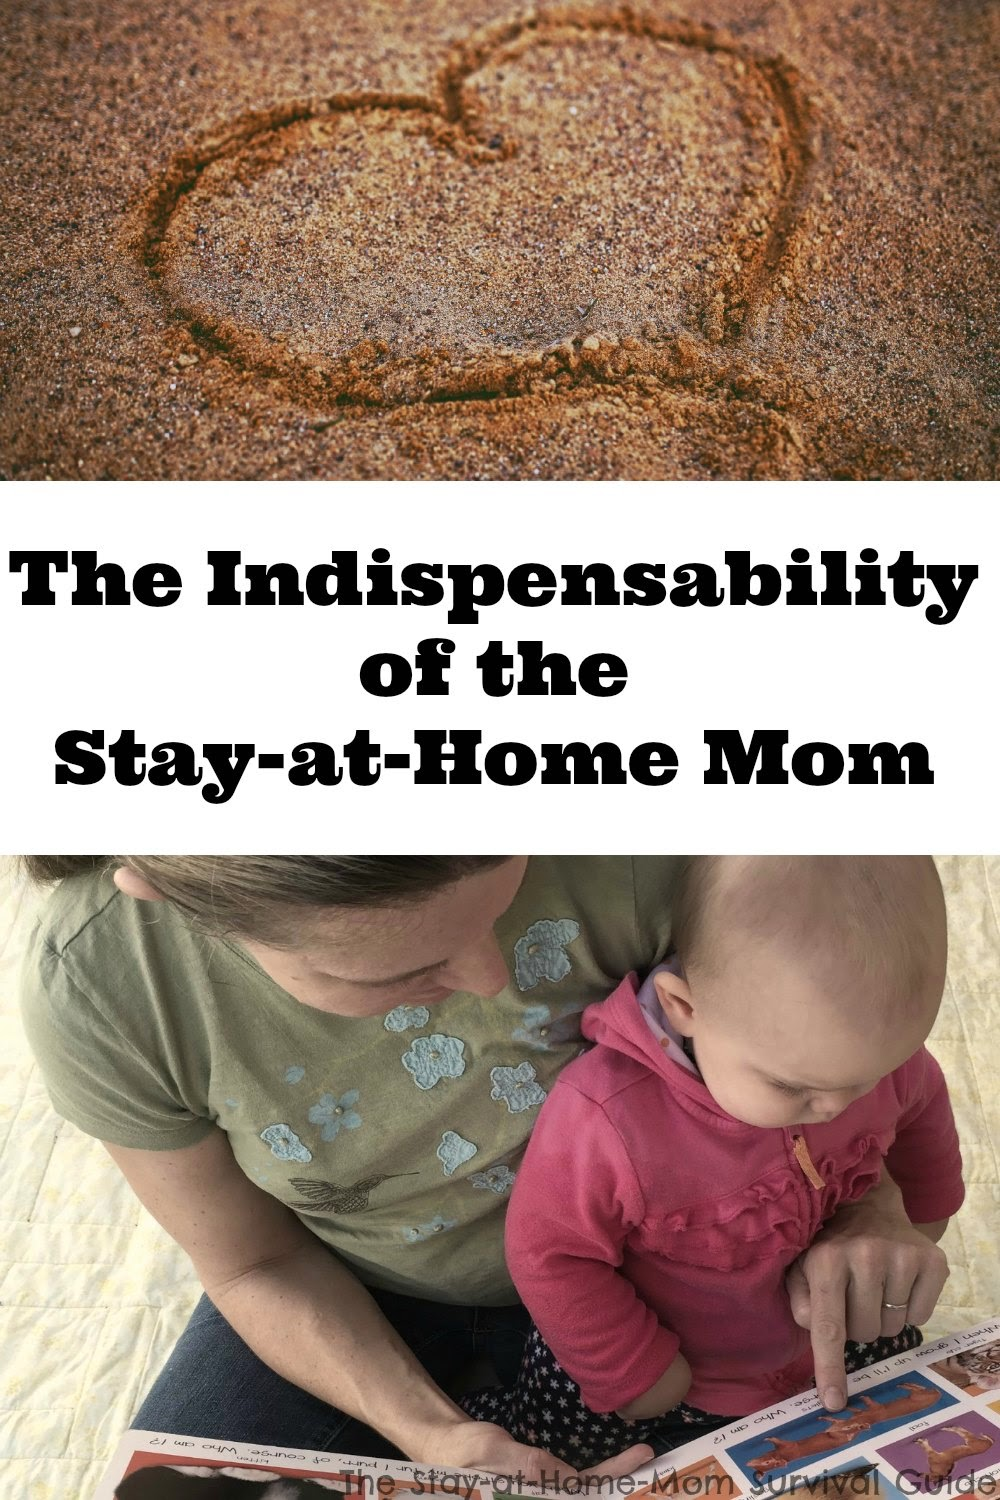 Being a stay-at-home-mom is important. We don't choose it because we are rich, or lazy, we choose it because of the benefits it provides our family. We are valuable.